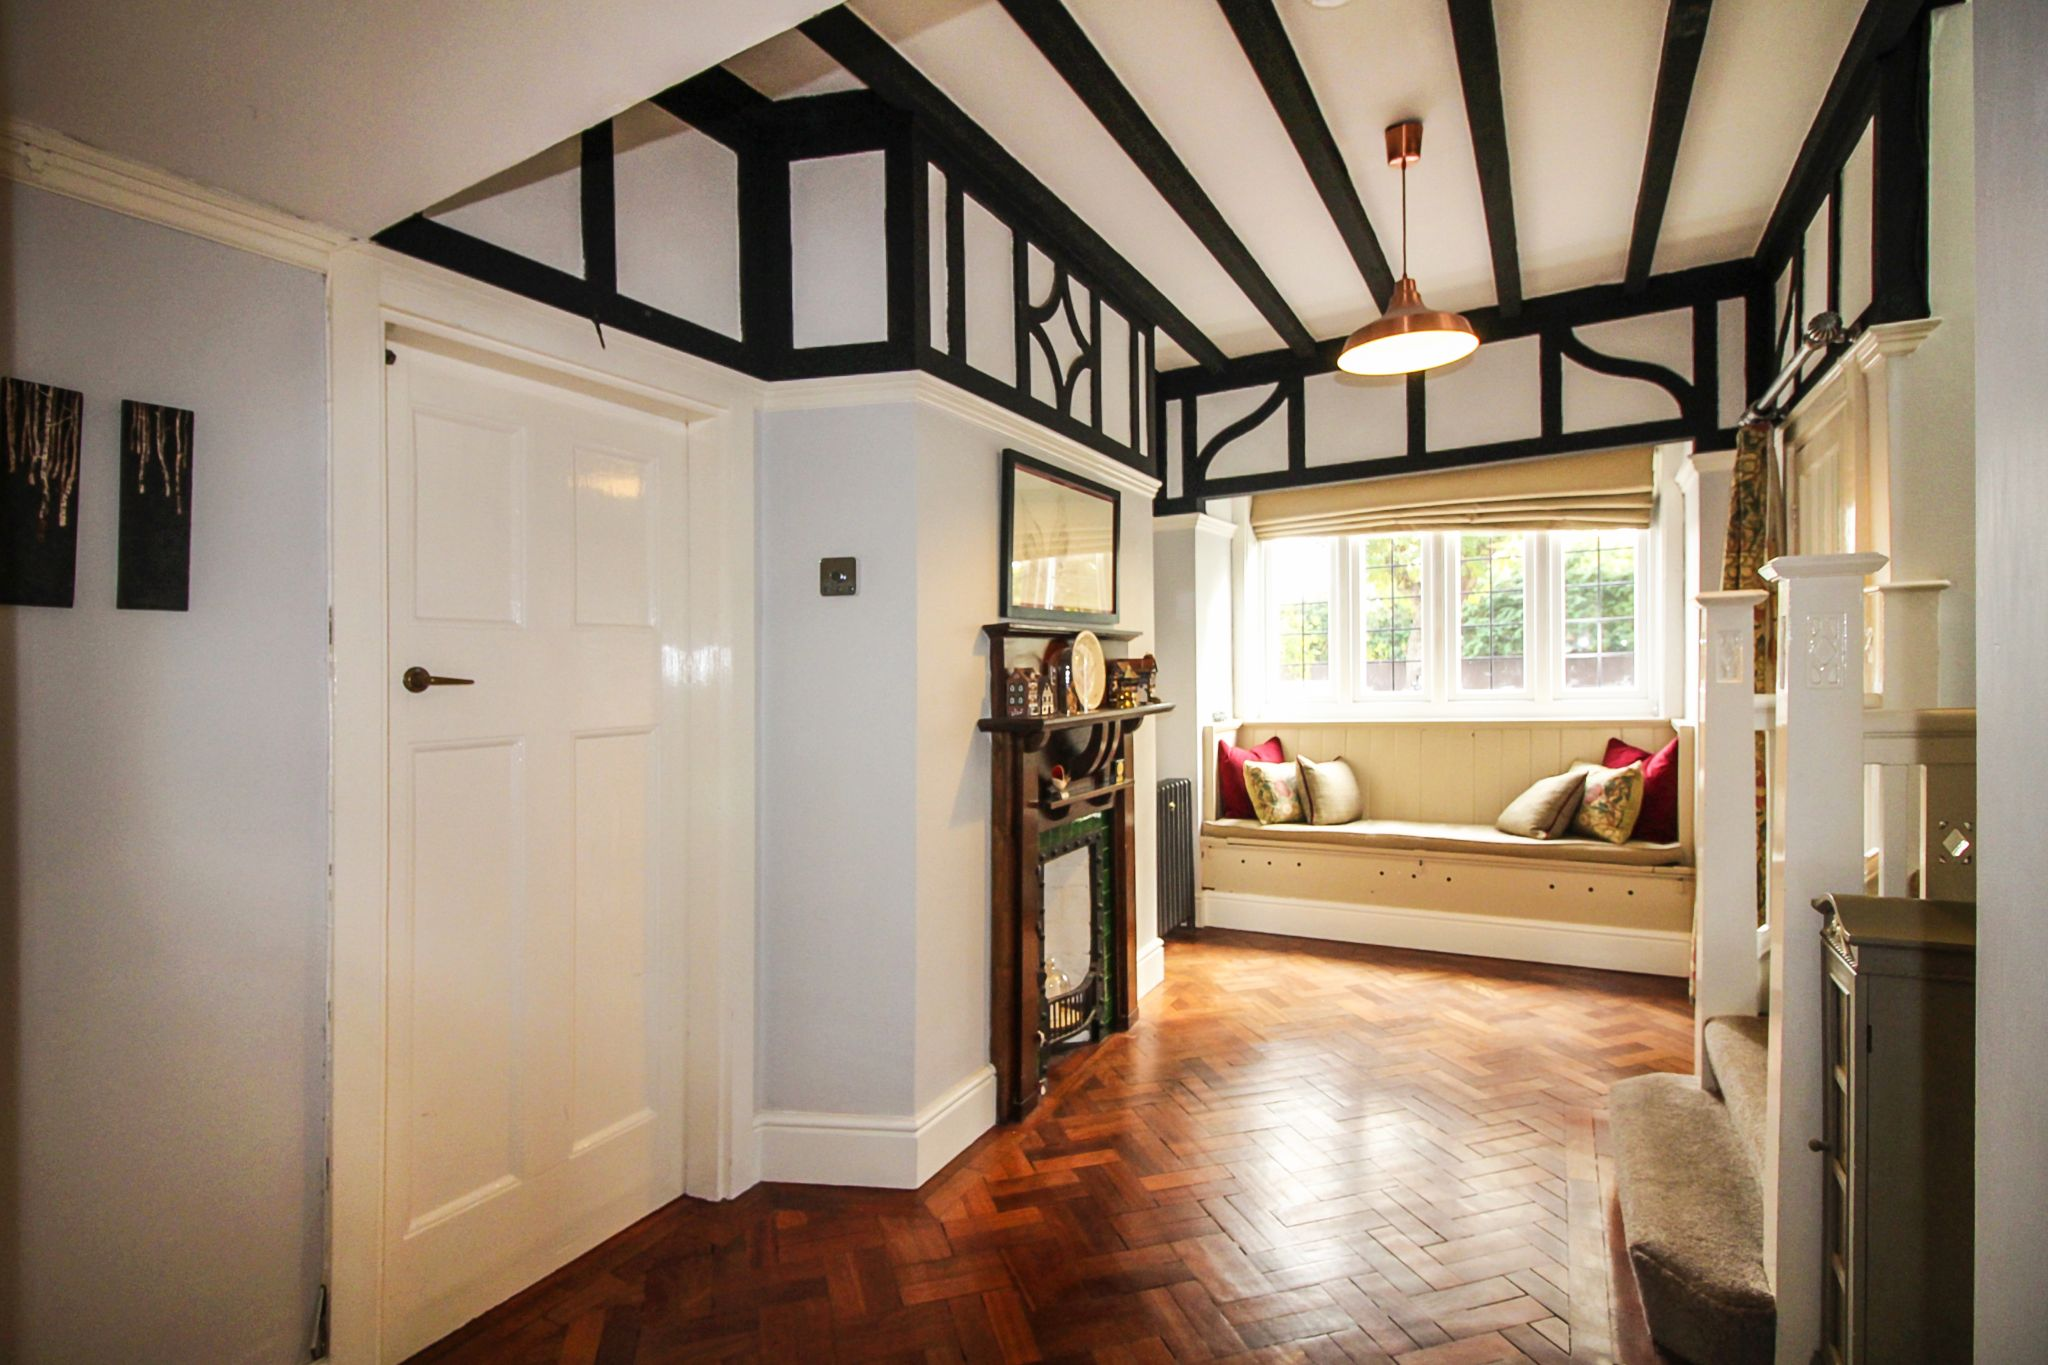 5 bedroom detached house For Sale in Solihull - Photograph 7.